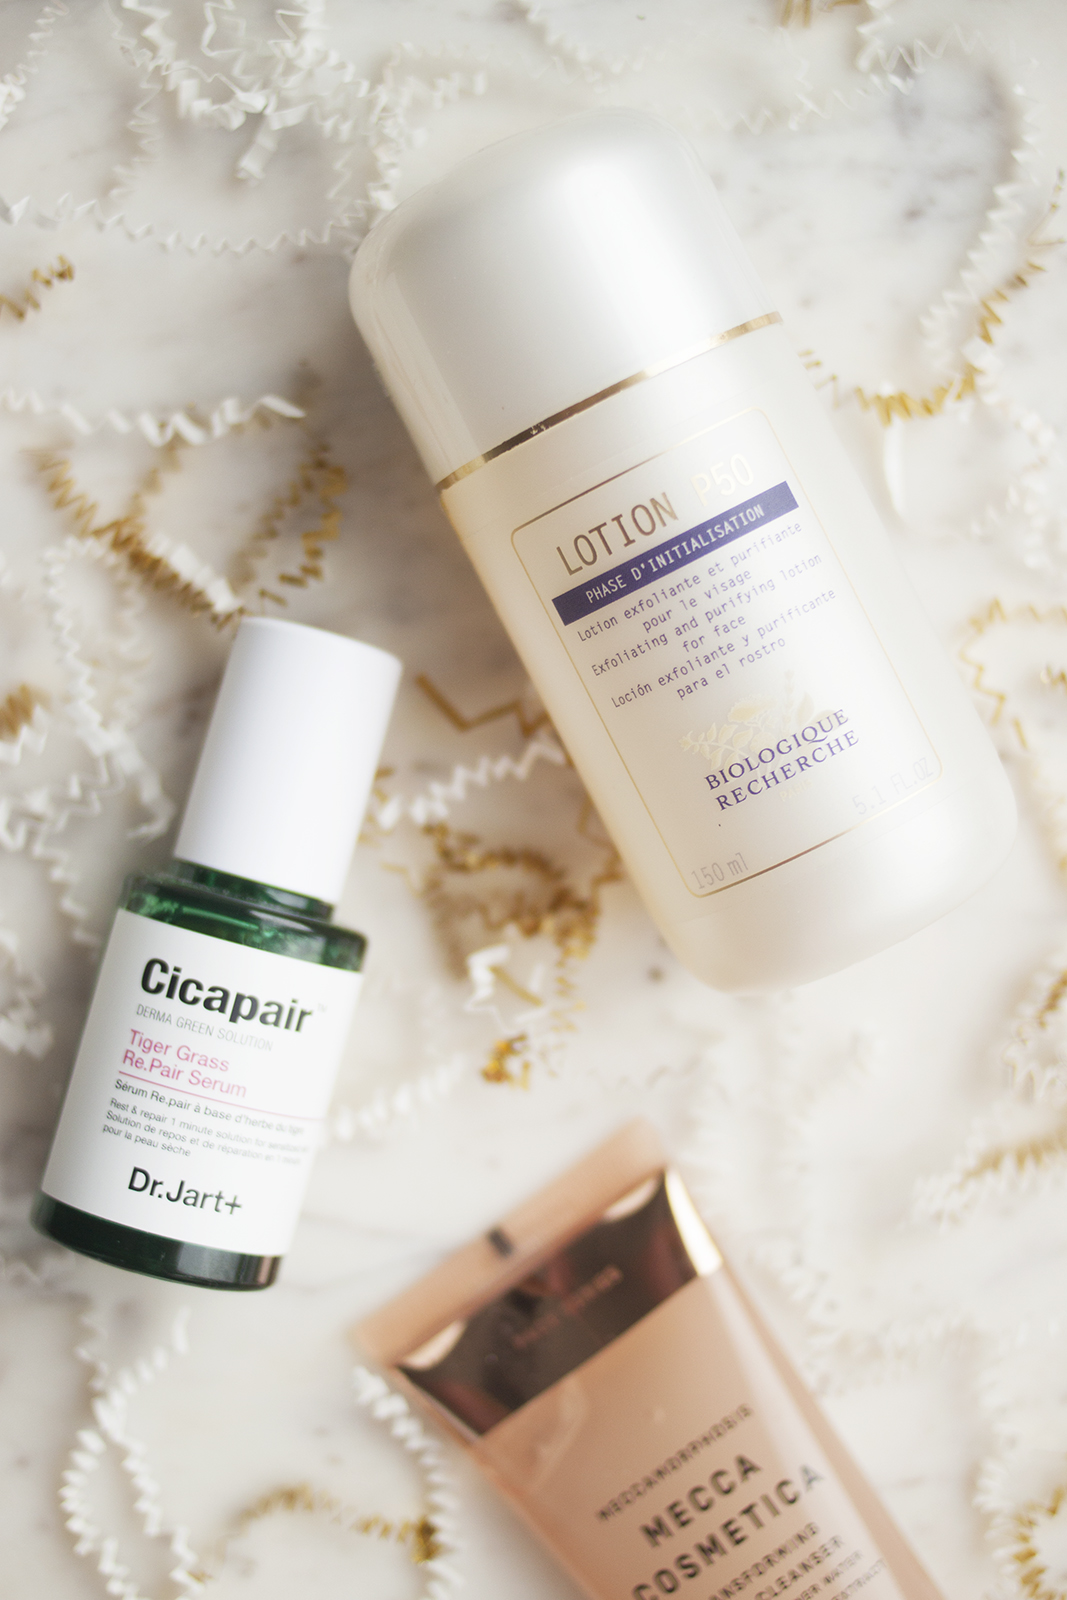 Skin, Hair & Body Care Favourites for 2018  |  LITTLE HENRY LEE